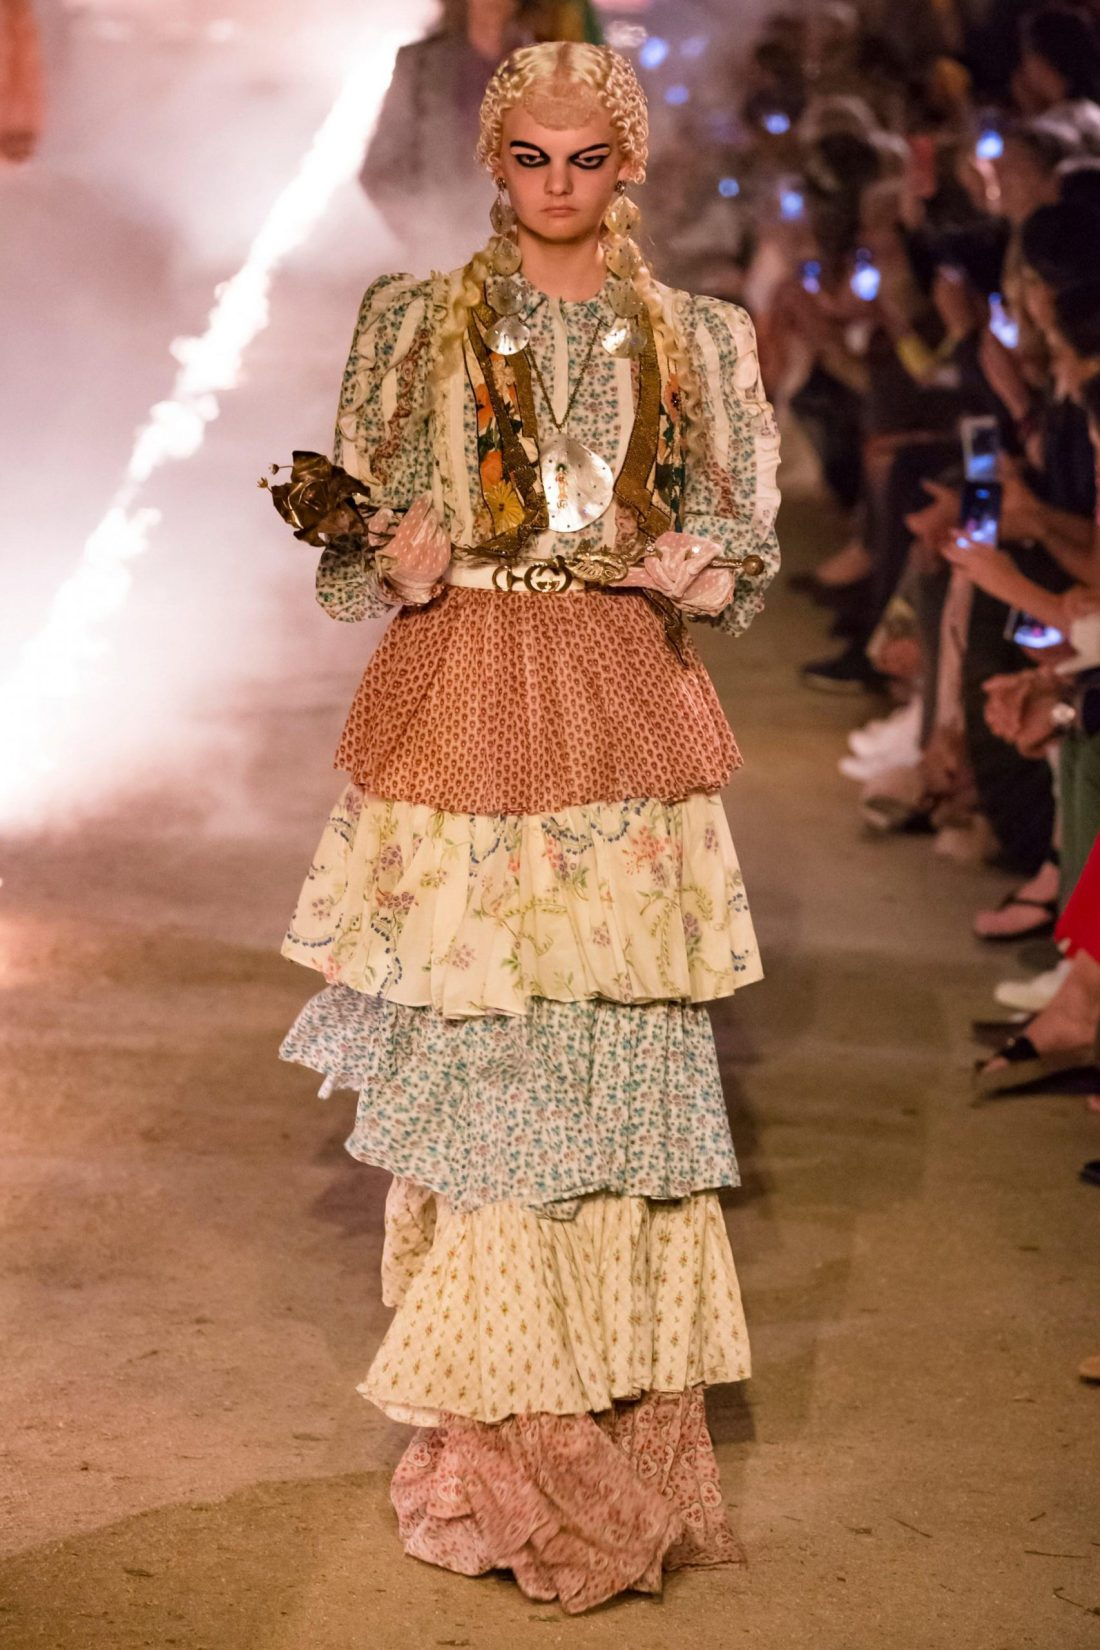 Gucci Tiered Skirt on the Runway